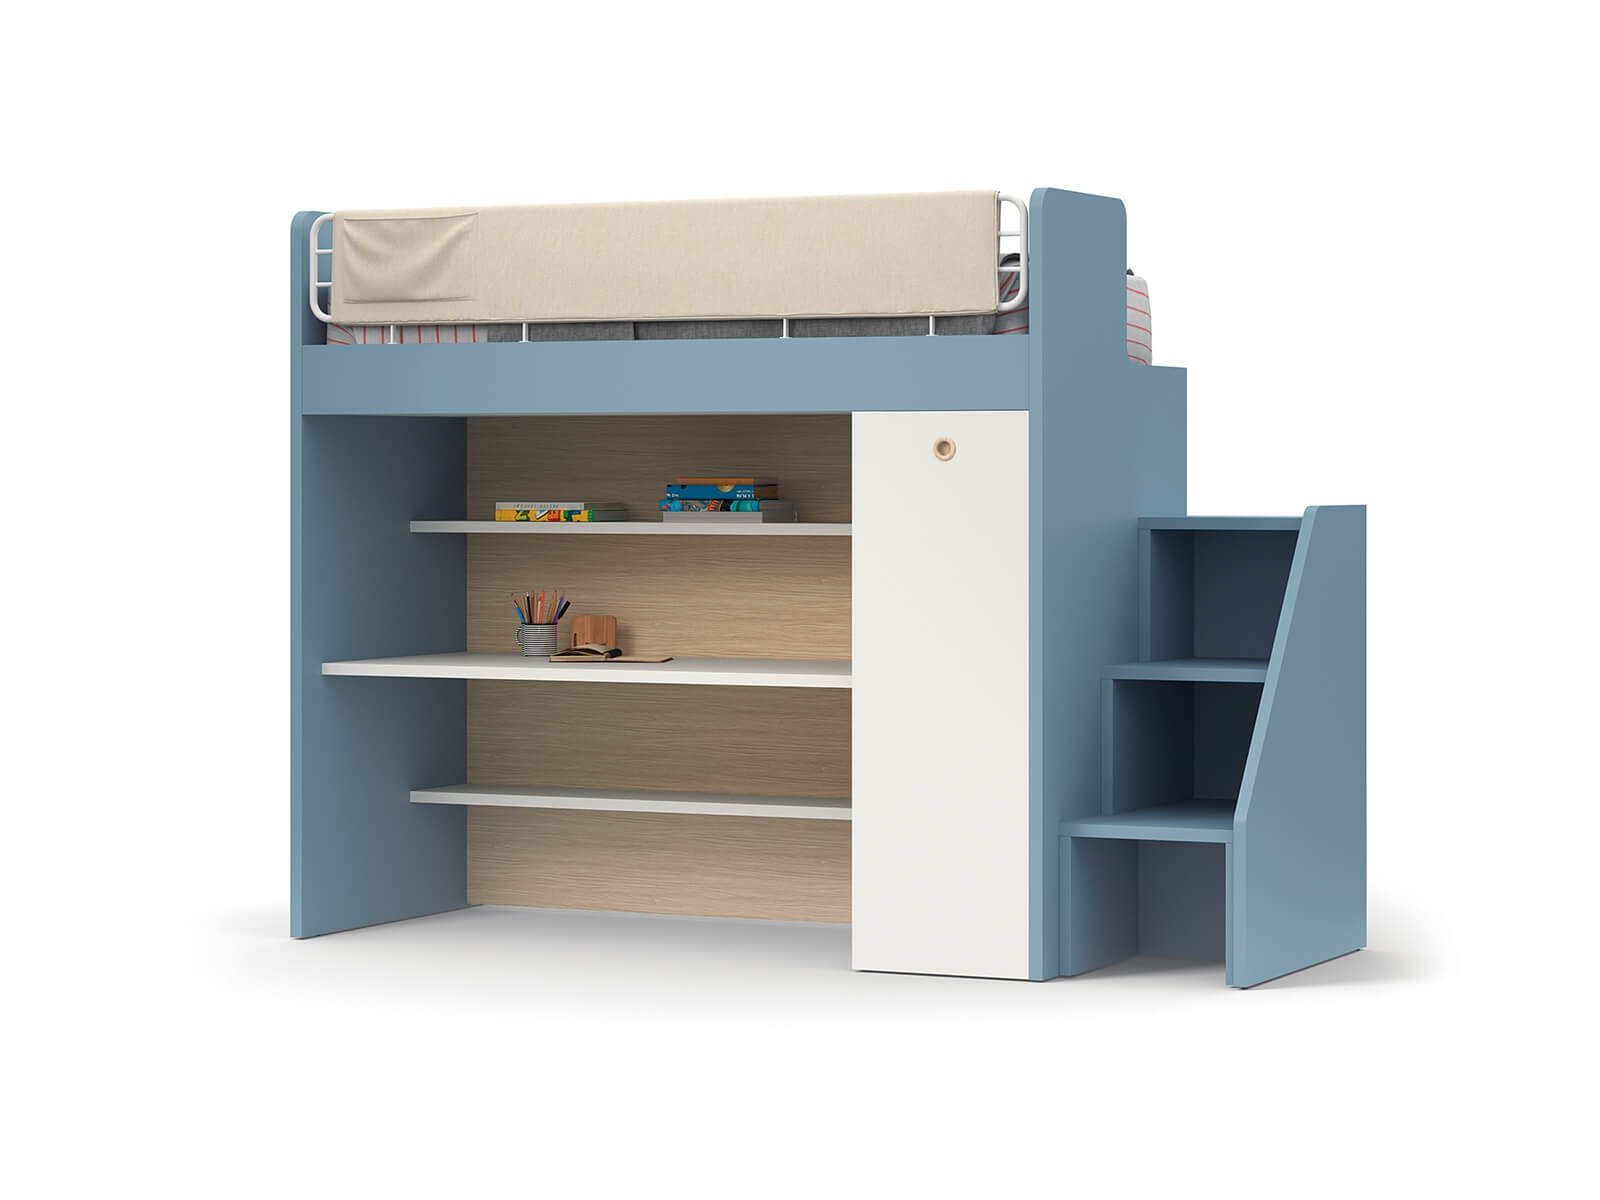 Ergo bunk bed